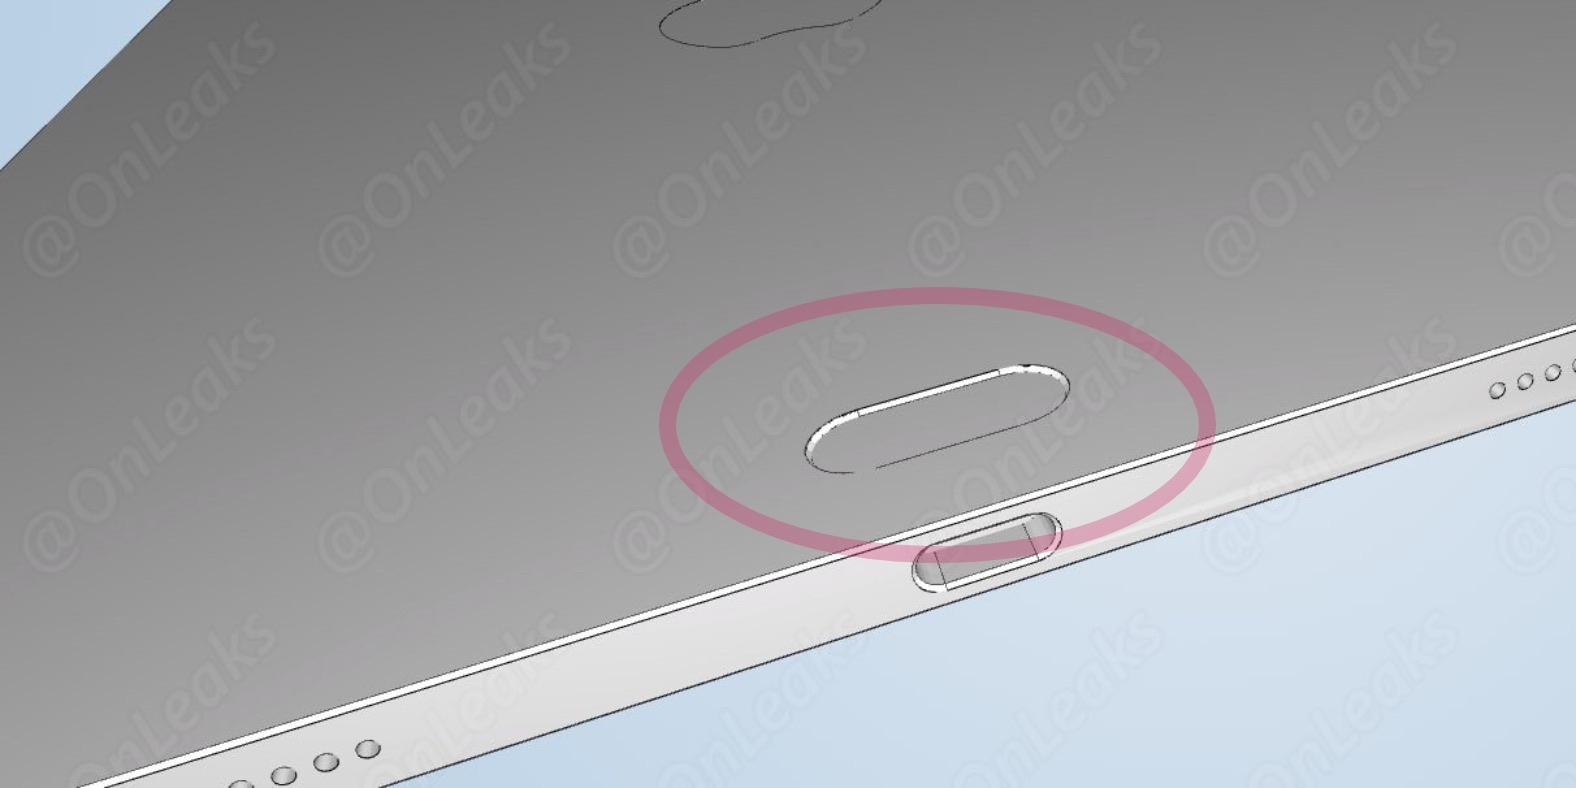 Purported 2018 iPad Pro CAD shows new location of Smart Connector